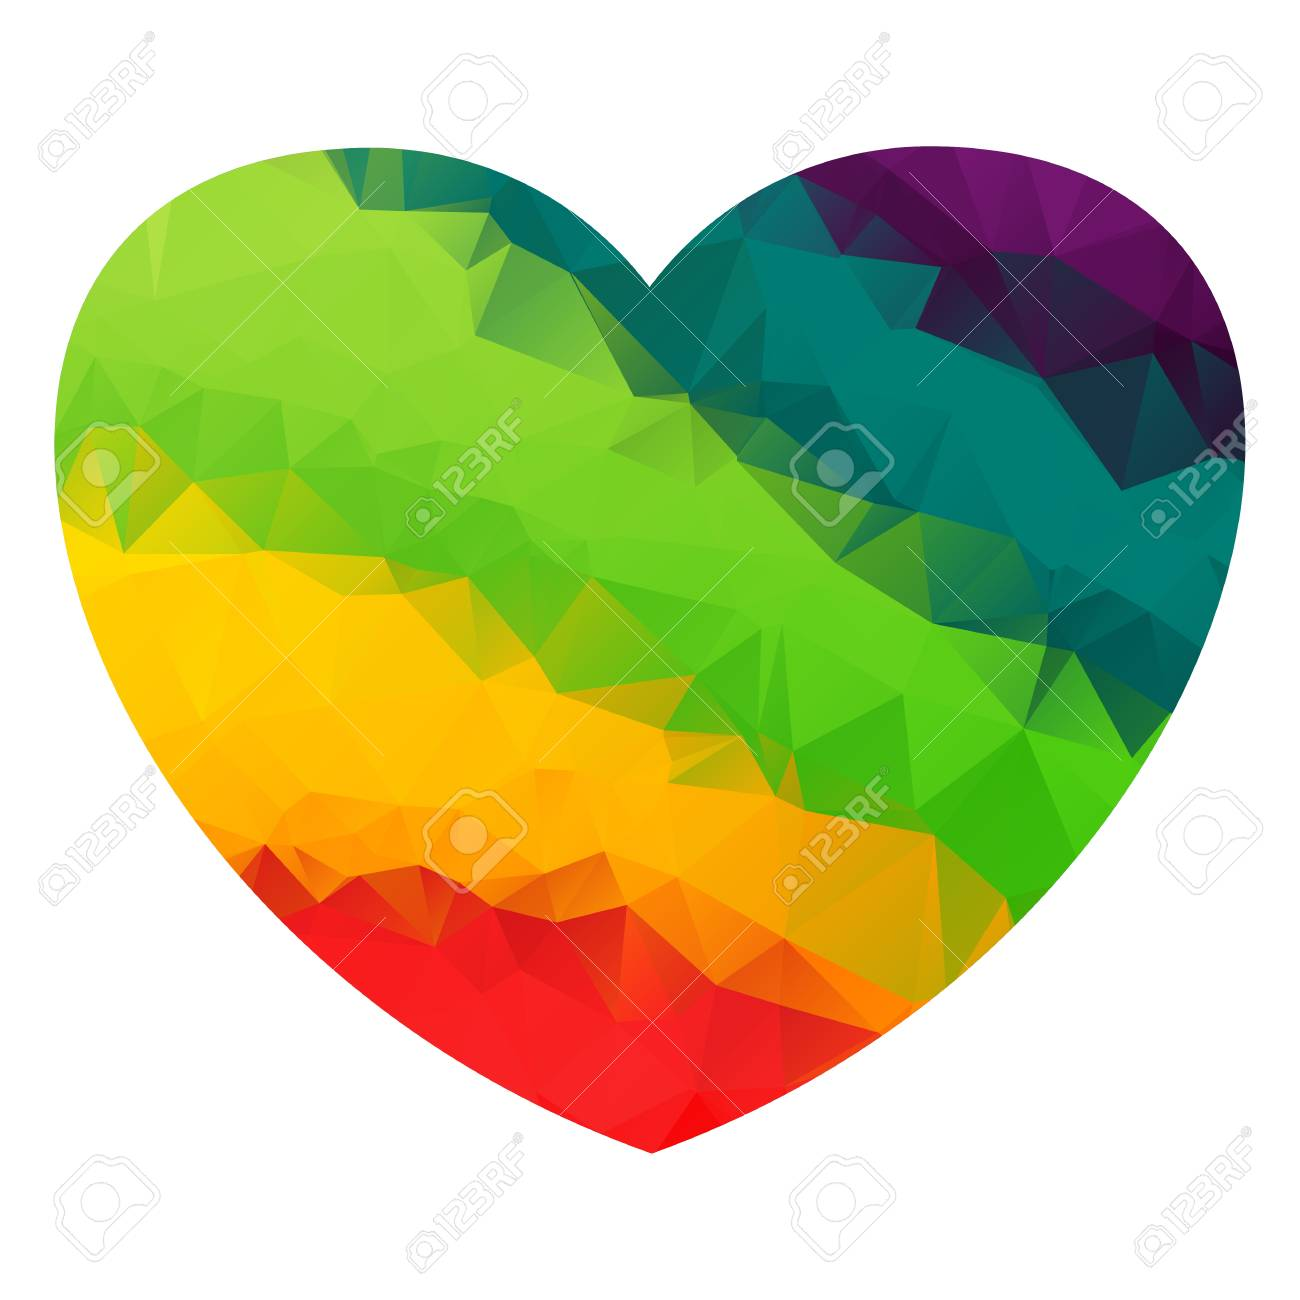 Polygonal Heart Of The Color Of The Rainbow Flag And Symbol Of Gay